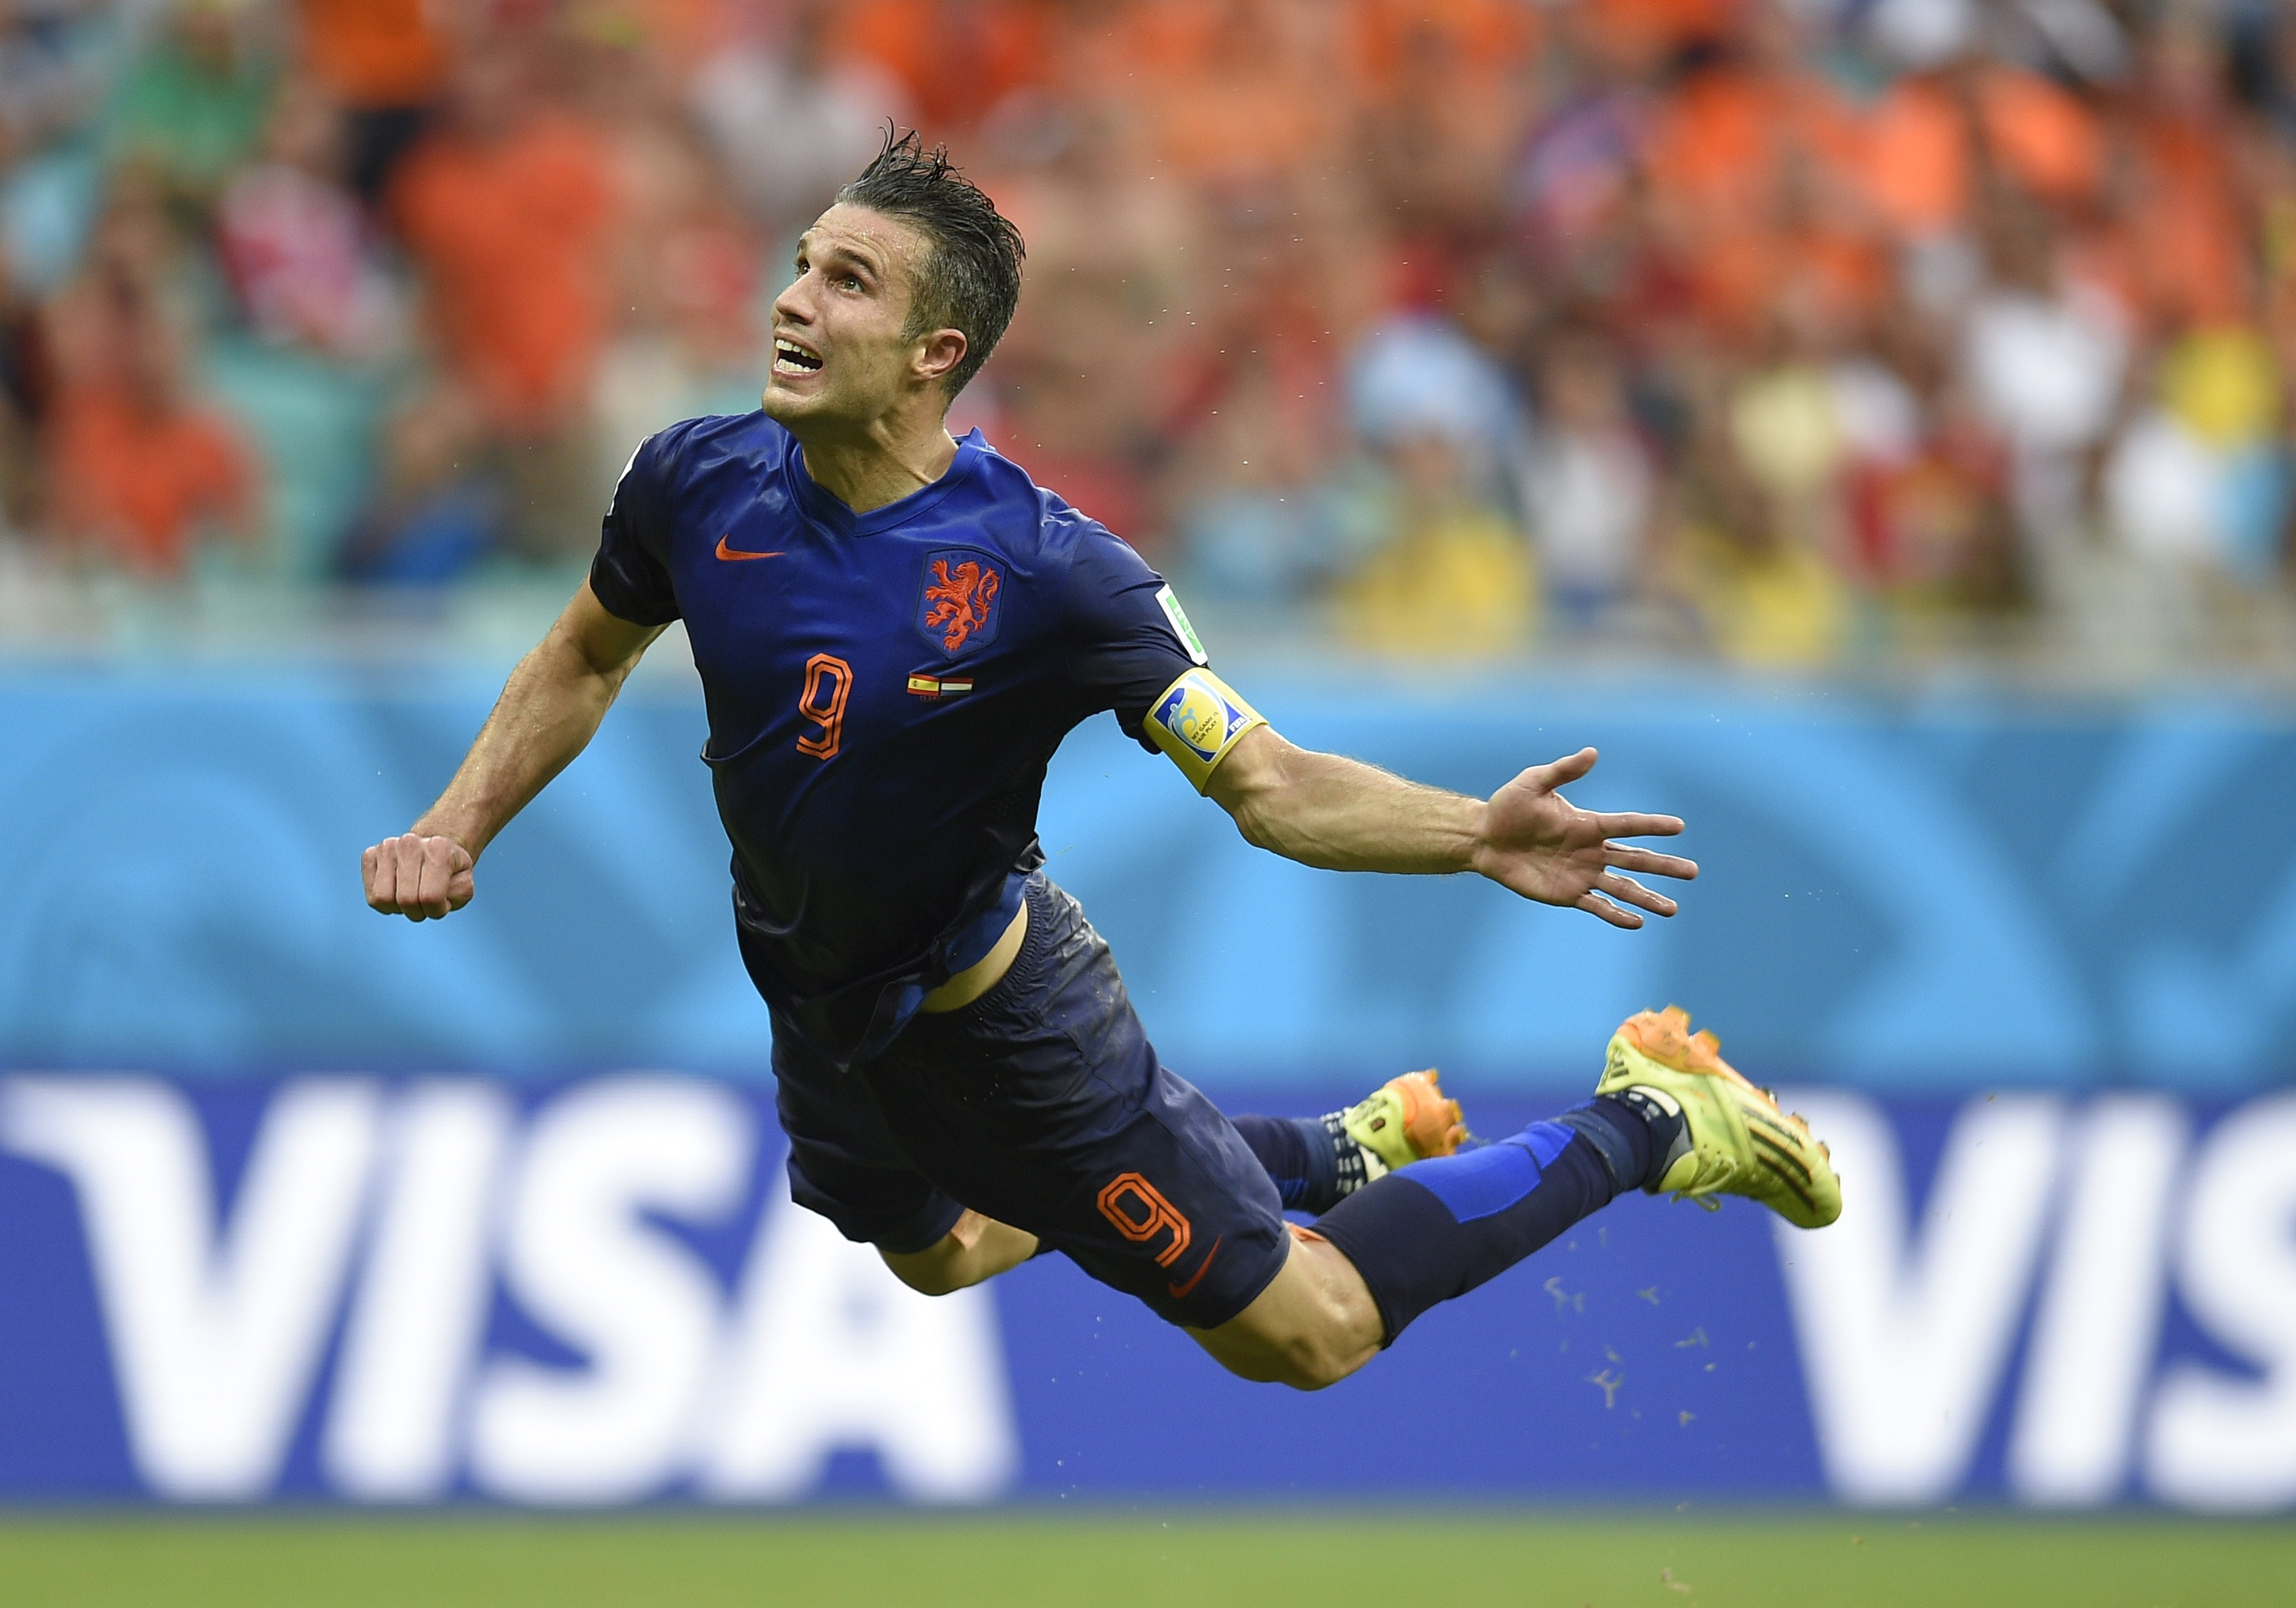 Netherlands' forward Robin van Persie scores during a Group B football match between Spain and the Netherlands at the Fonte Nova Arena in Salvador during the 2014 FIFA World Cup on June 13, 2014.    (AFP PHOTO / LLUIS GENE)